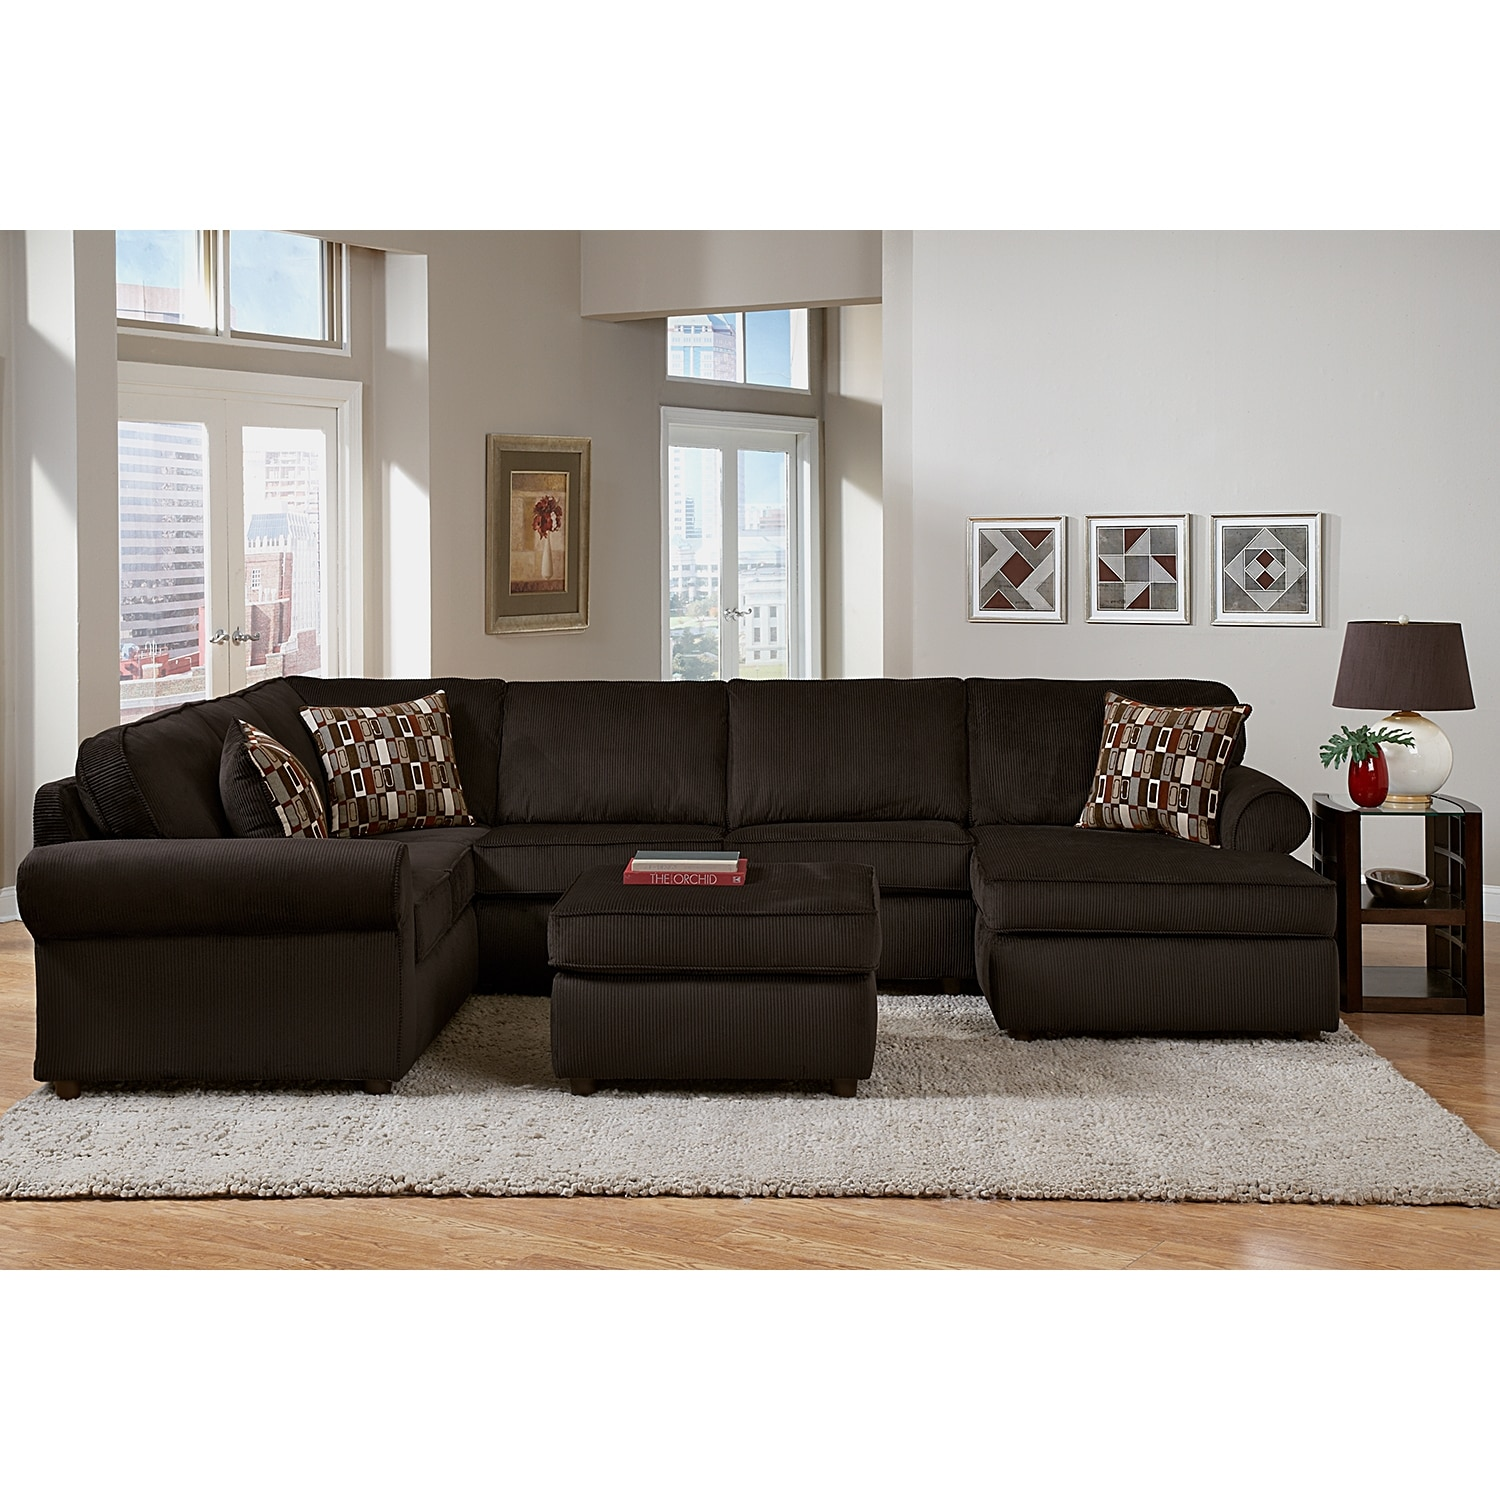 chocolate brown living room chairs clean rug monarch 3-piece sectional - | value city furniture